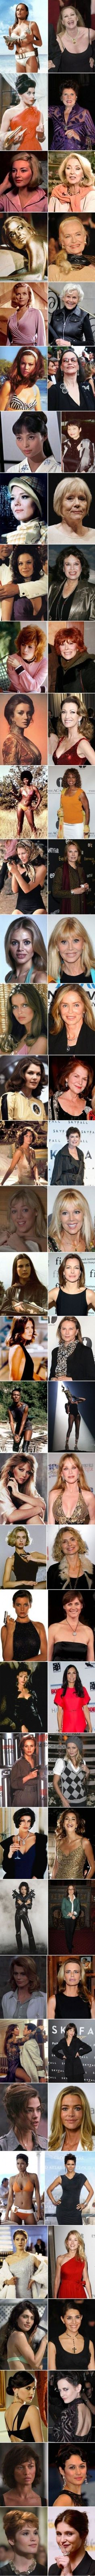 Bond Girls, Then And Now in Pictures